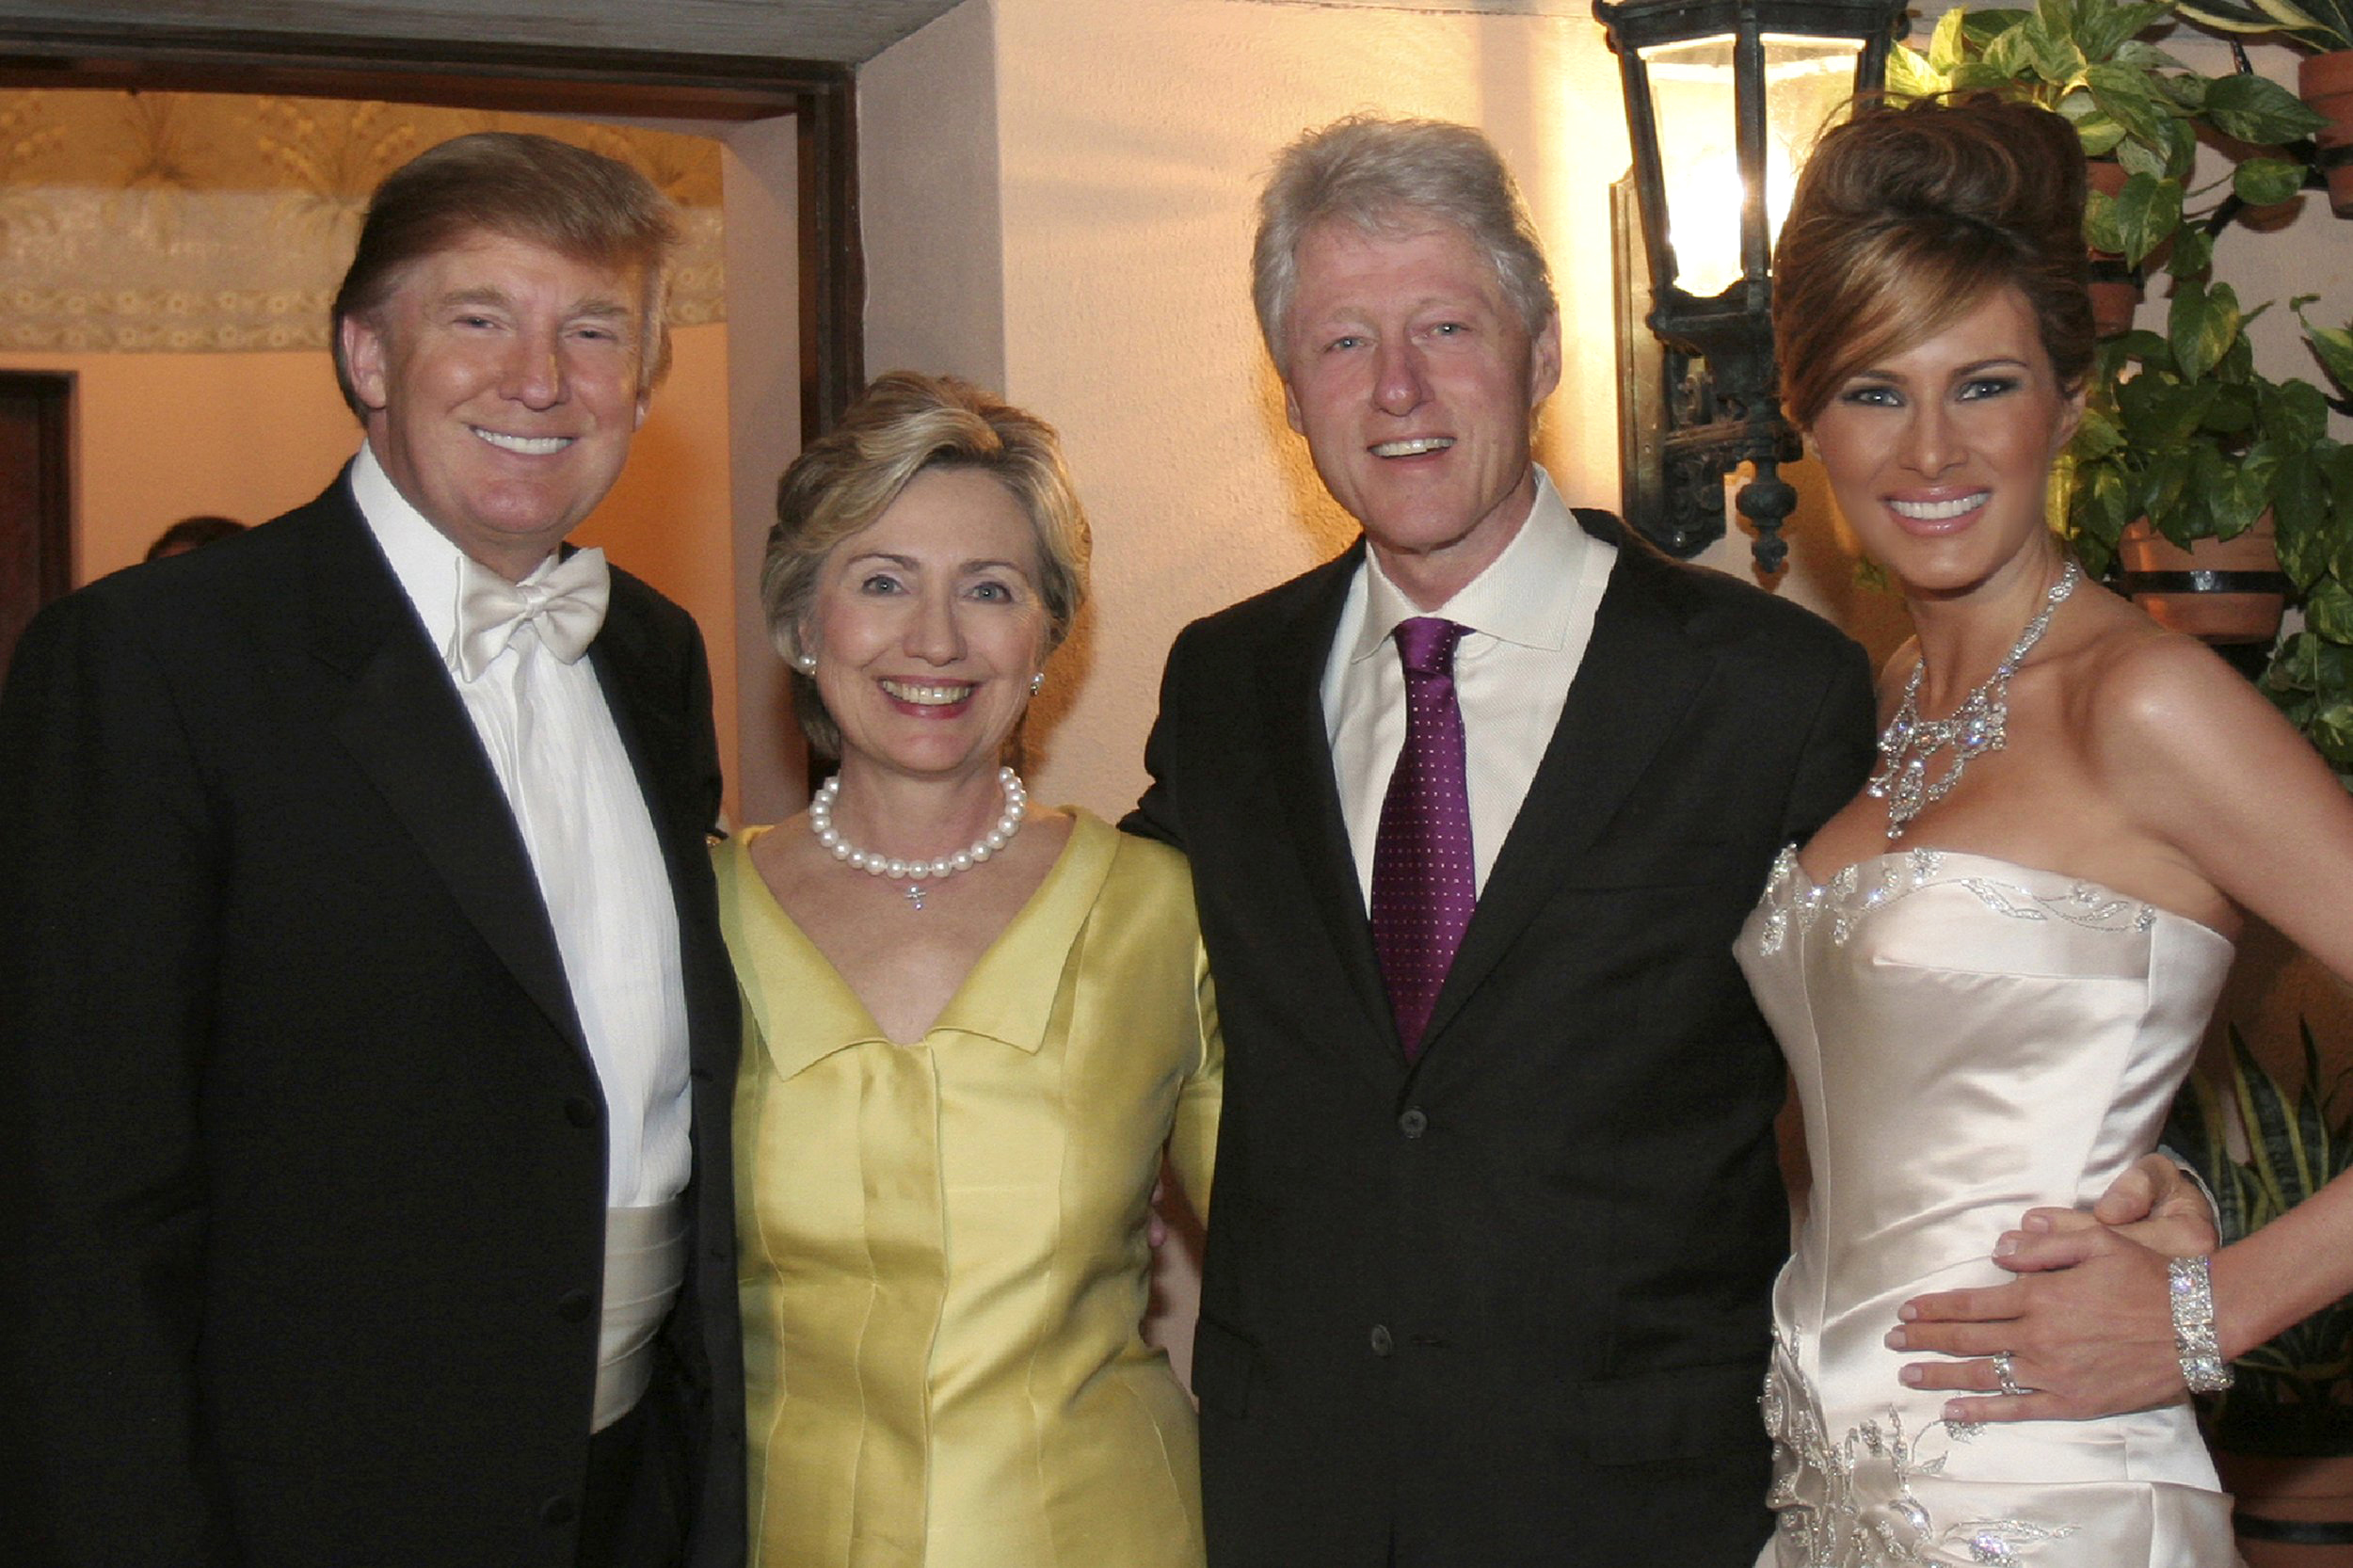 "trump rodham clinton knavs 2005 Mar-a-Lago Club #wedding #murica #uniparty #capitalism #micc #idiots ""Establishment"" #drain the swamp ! ."